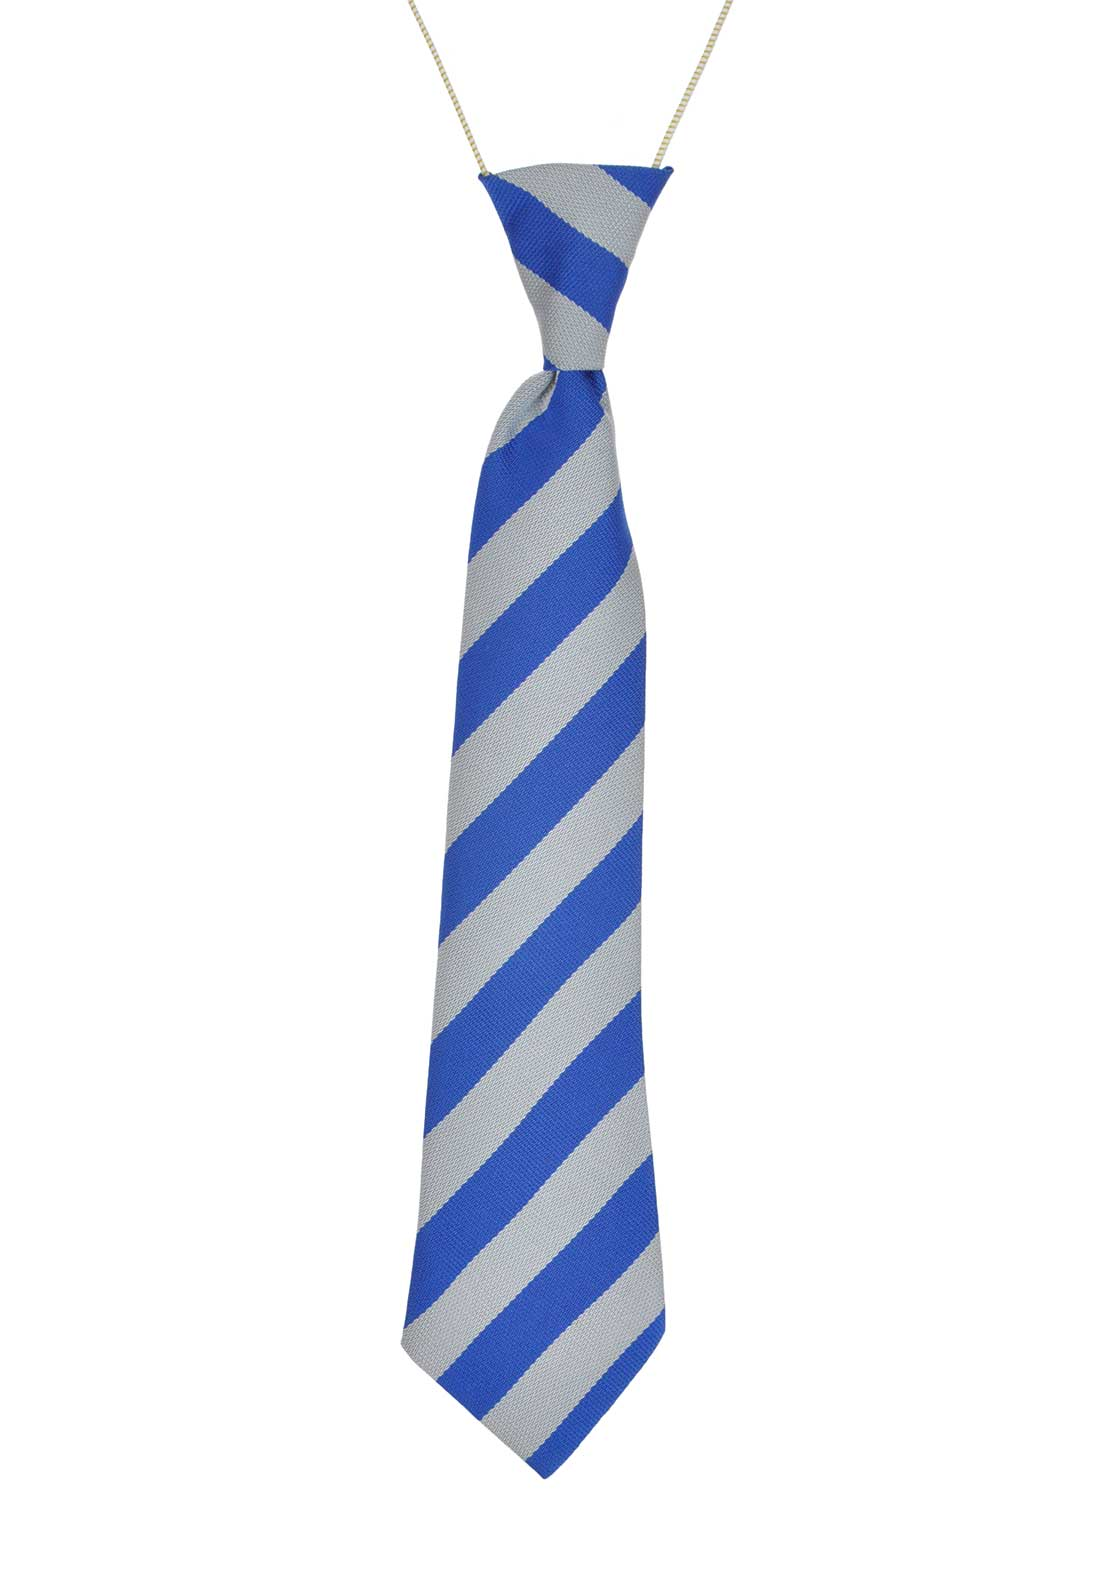 Hunter Convoy N.S Striped Readymade Elasticated School Tie, Royal Blue